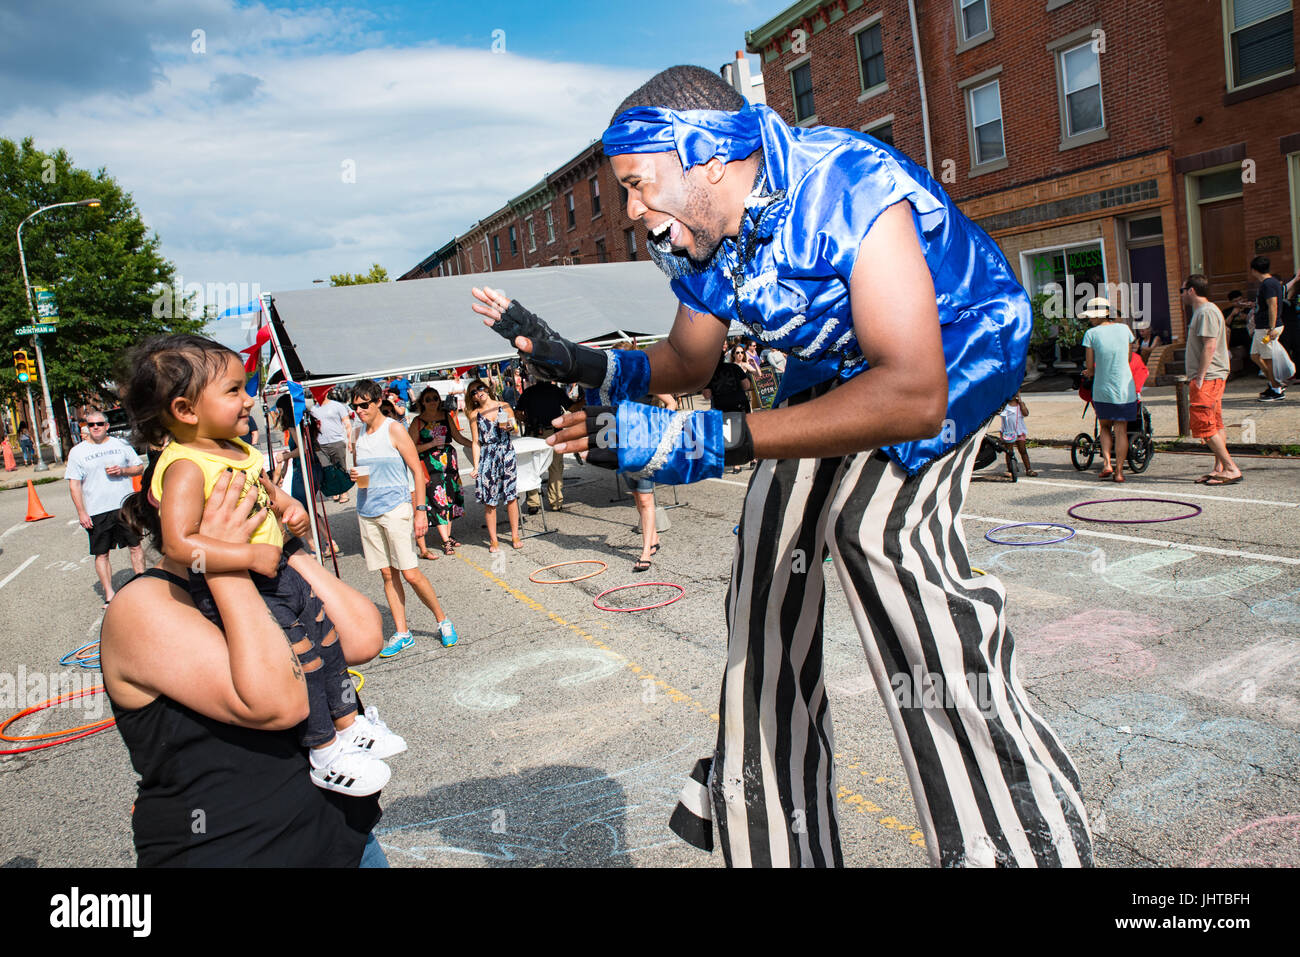 Philadelphia, USA. 15th July, 2017. Performer on stilts plays with a young child. Credit: Christopher Evens/Alamy - Stock Image